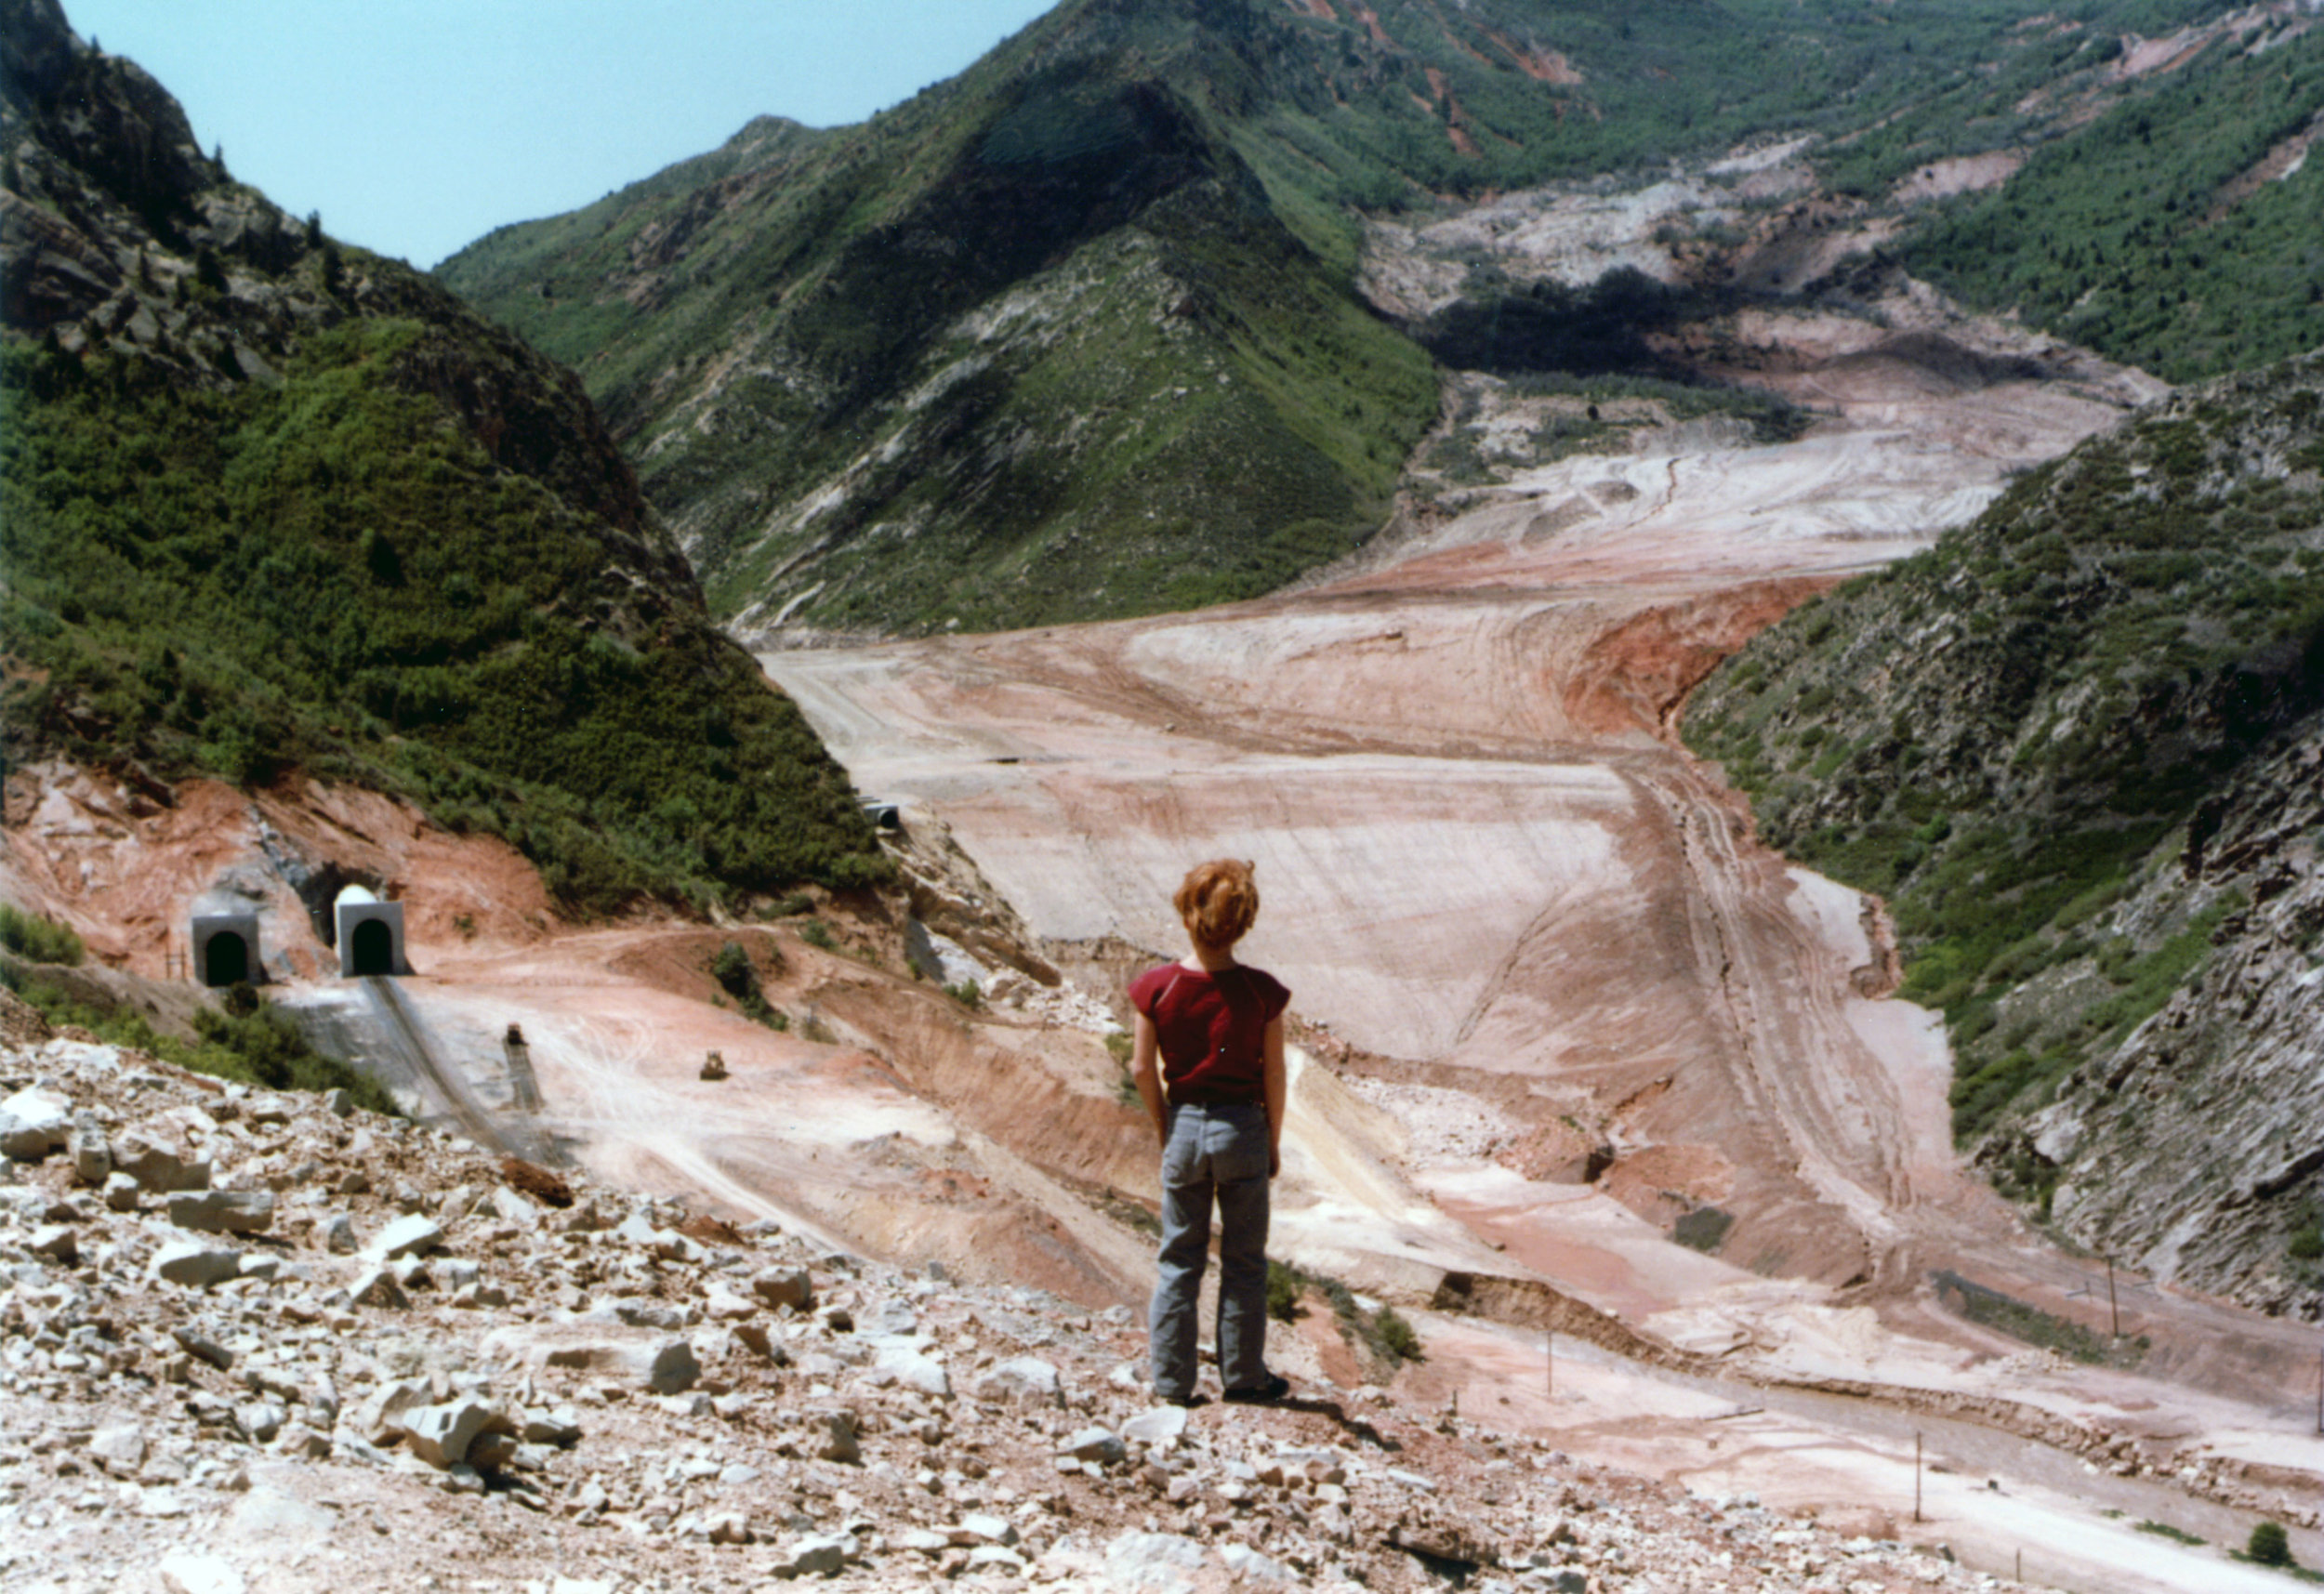 Unnamed youngster taking in the full scope of the Thistle mudslide (and new corresponding infrastructure) in May 1984. Photo courtesy of the Utah State Archives and Records Service.